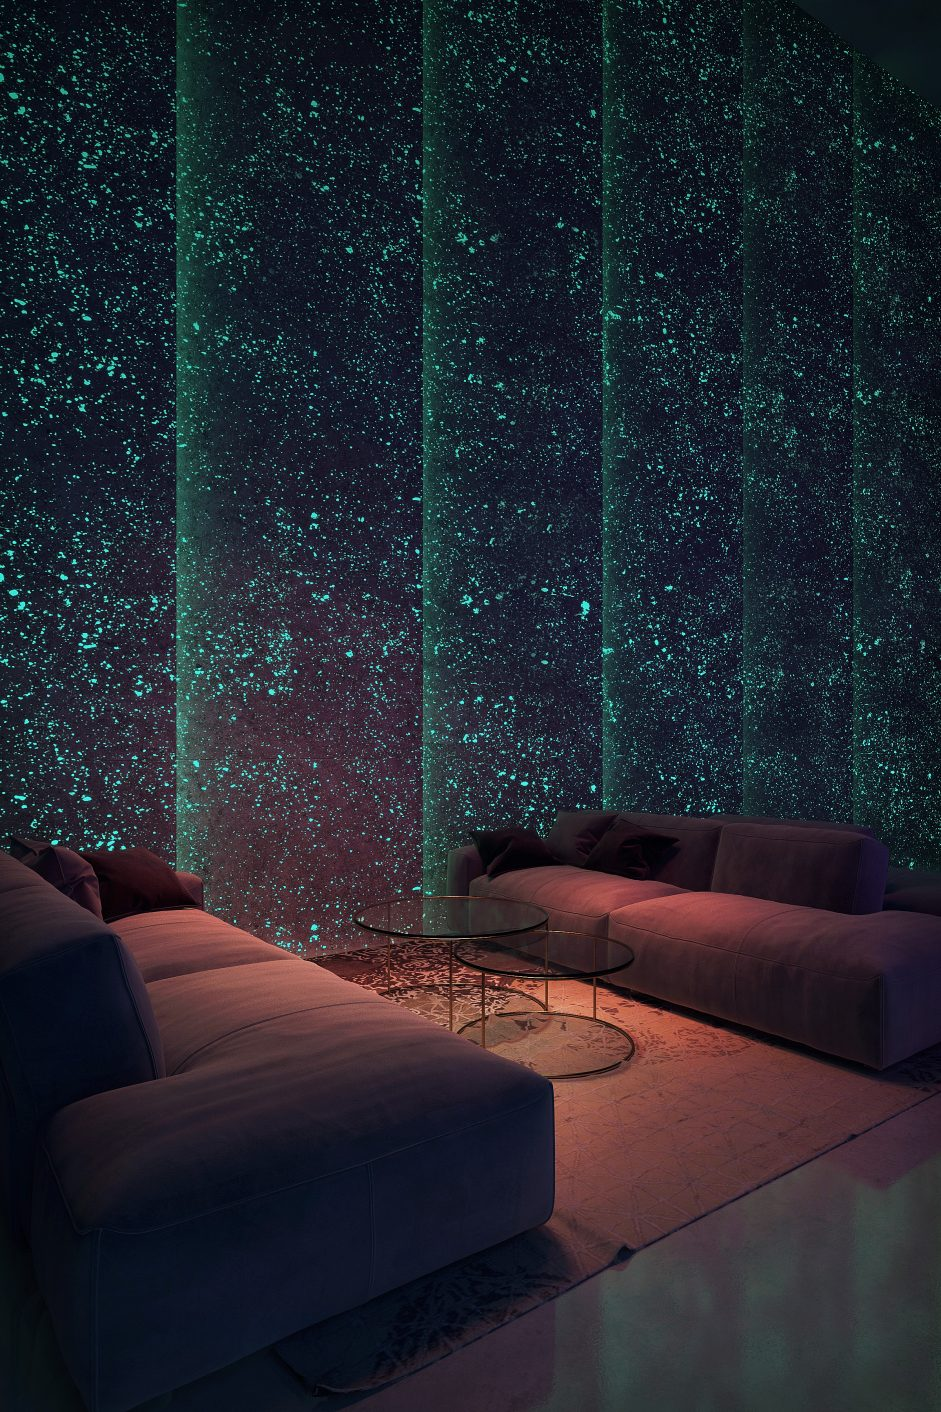 Visualization of a night club with modern light design on wall